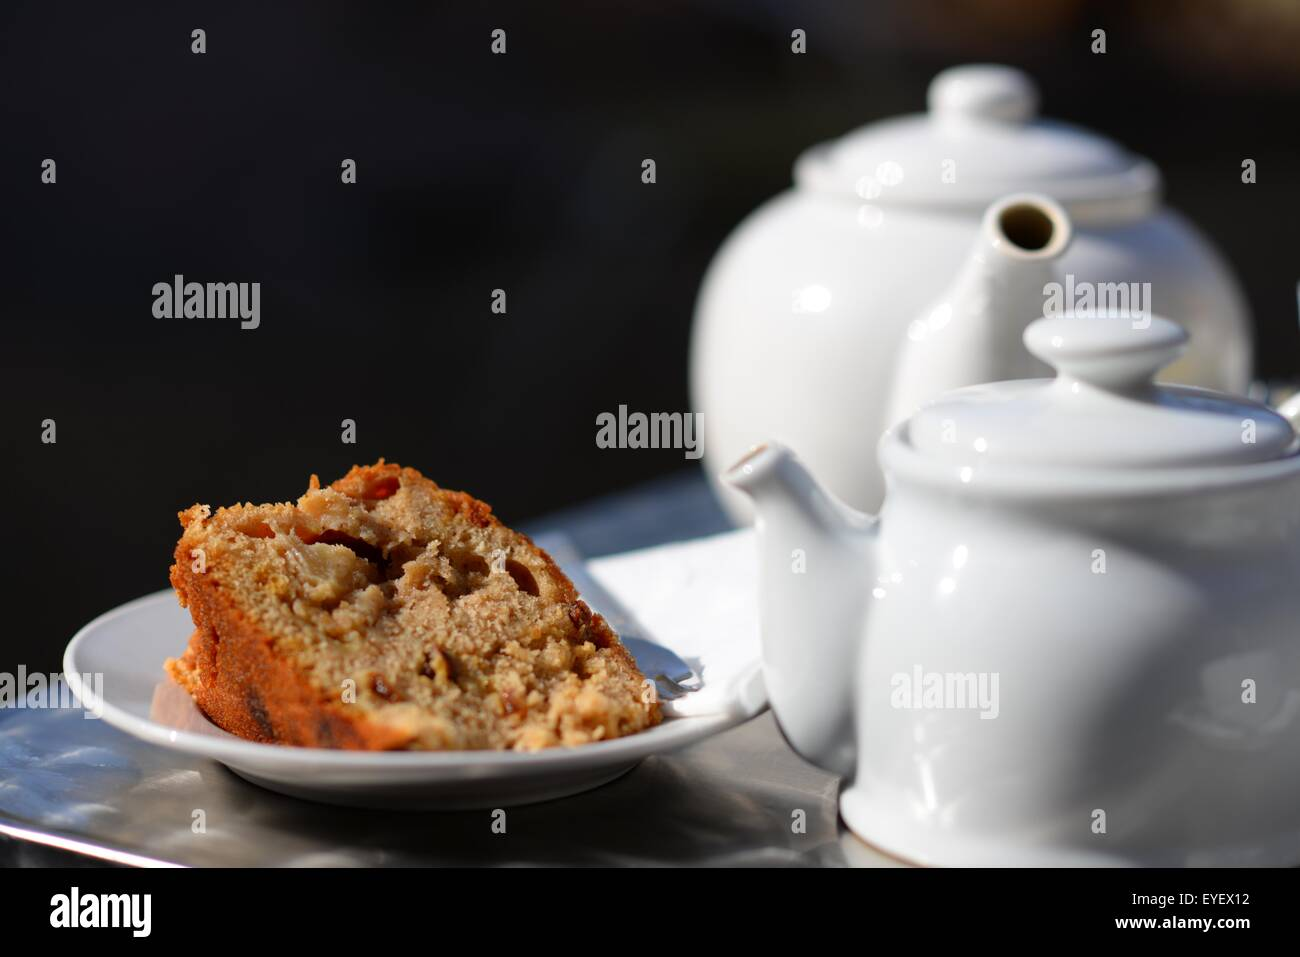 English afternoon tea for two in the garden with a large slice of walnut cake. - Stock Image